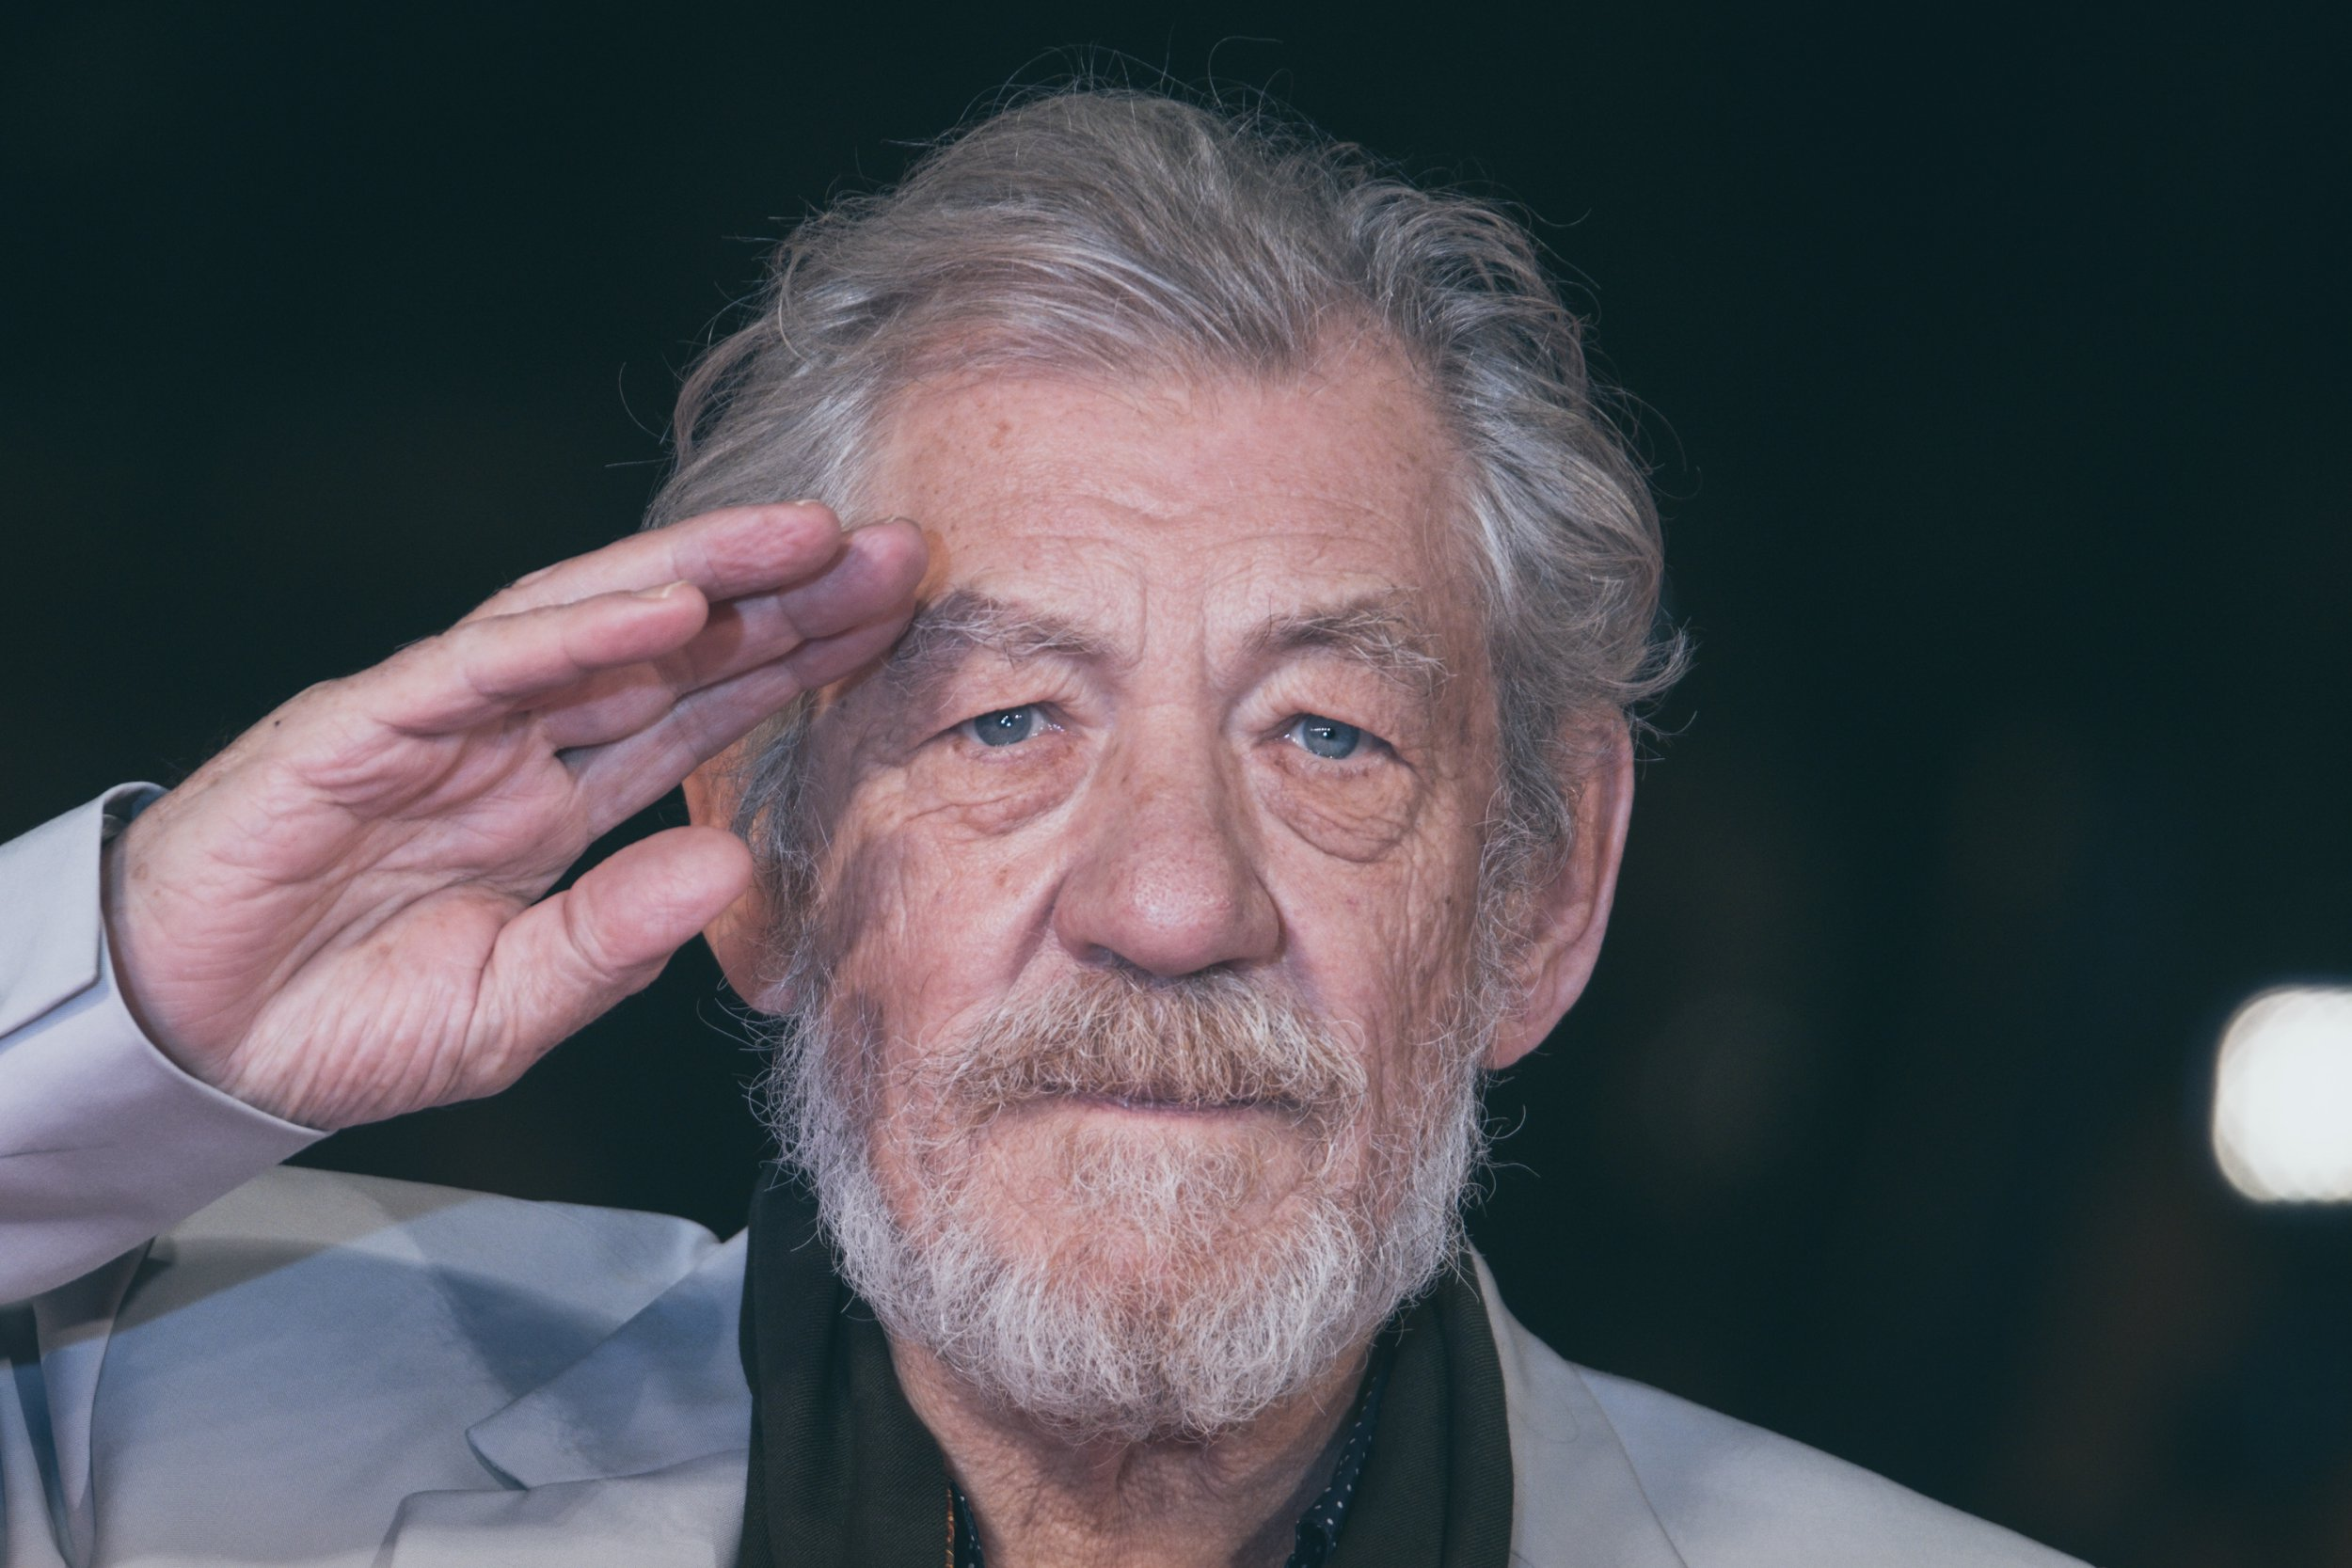 Lord Of the Rings star Sir Ian McKellen is already planning his own funeral